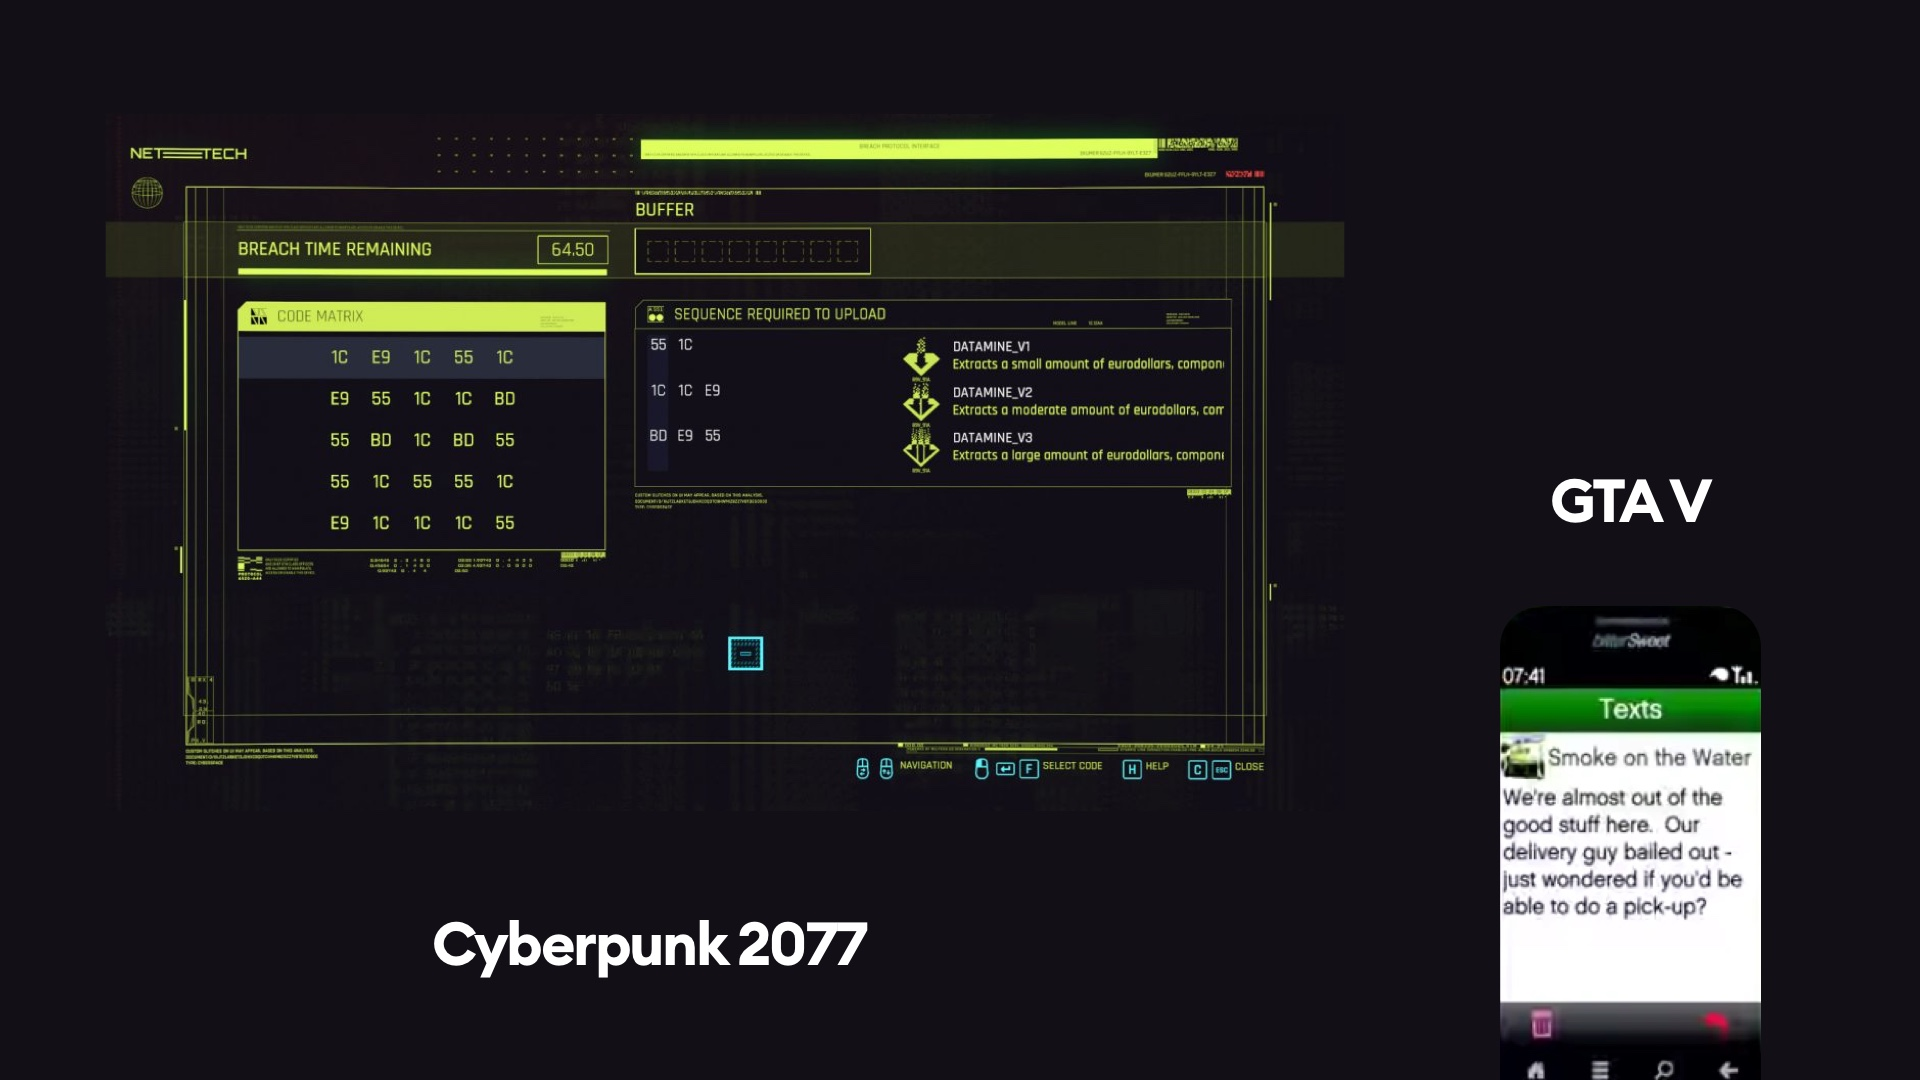 cyberpunk 2077 and GTA V game interfaces